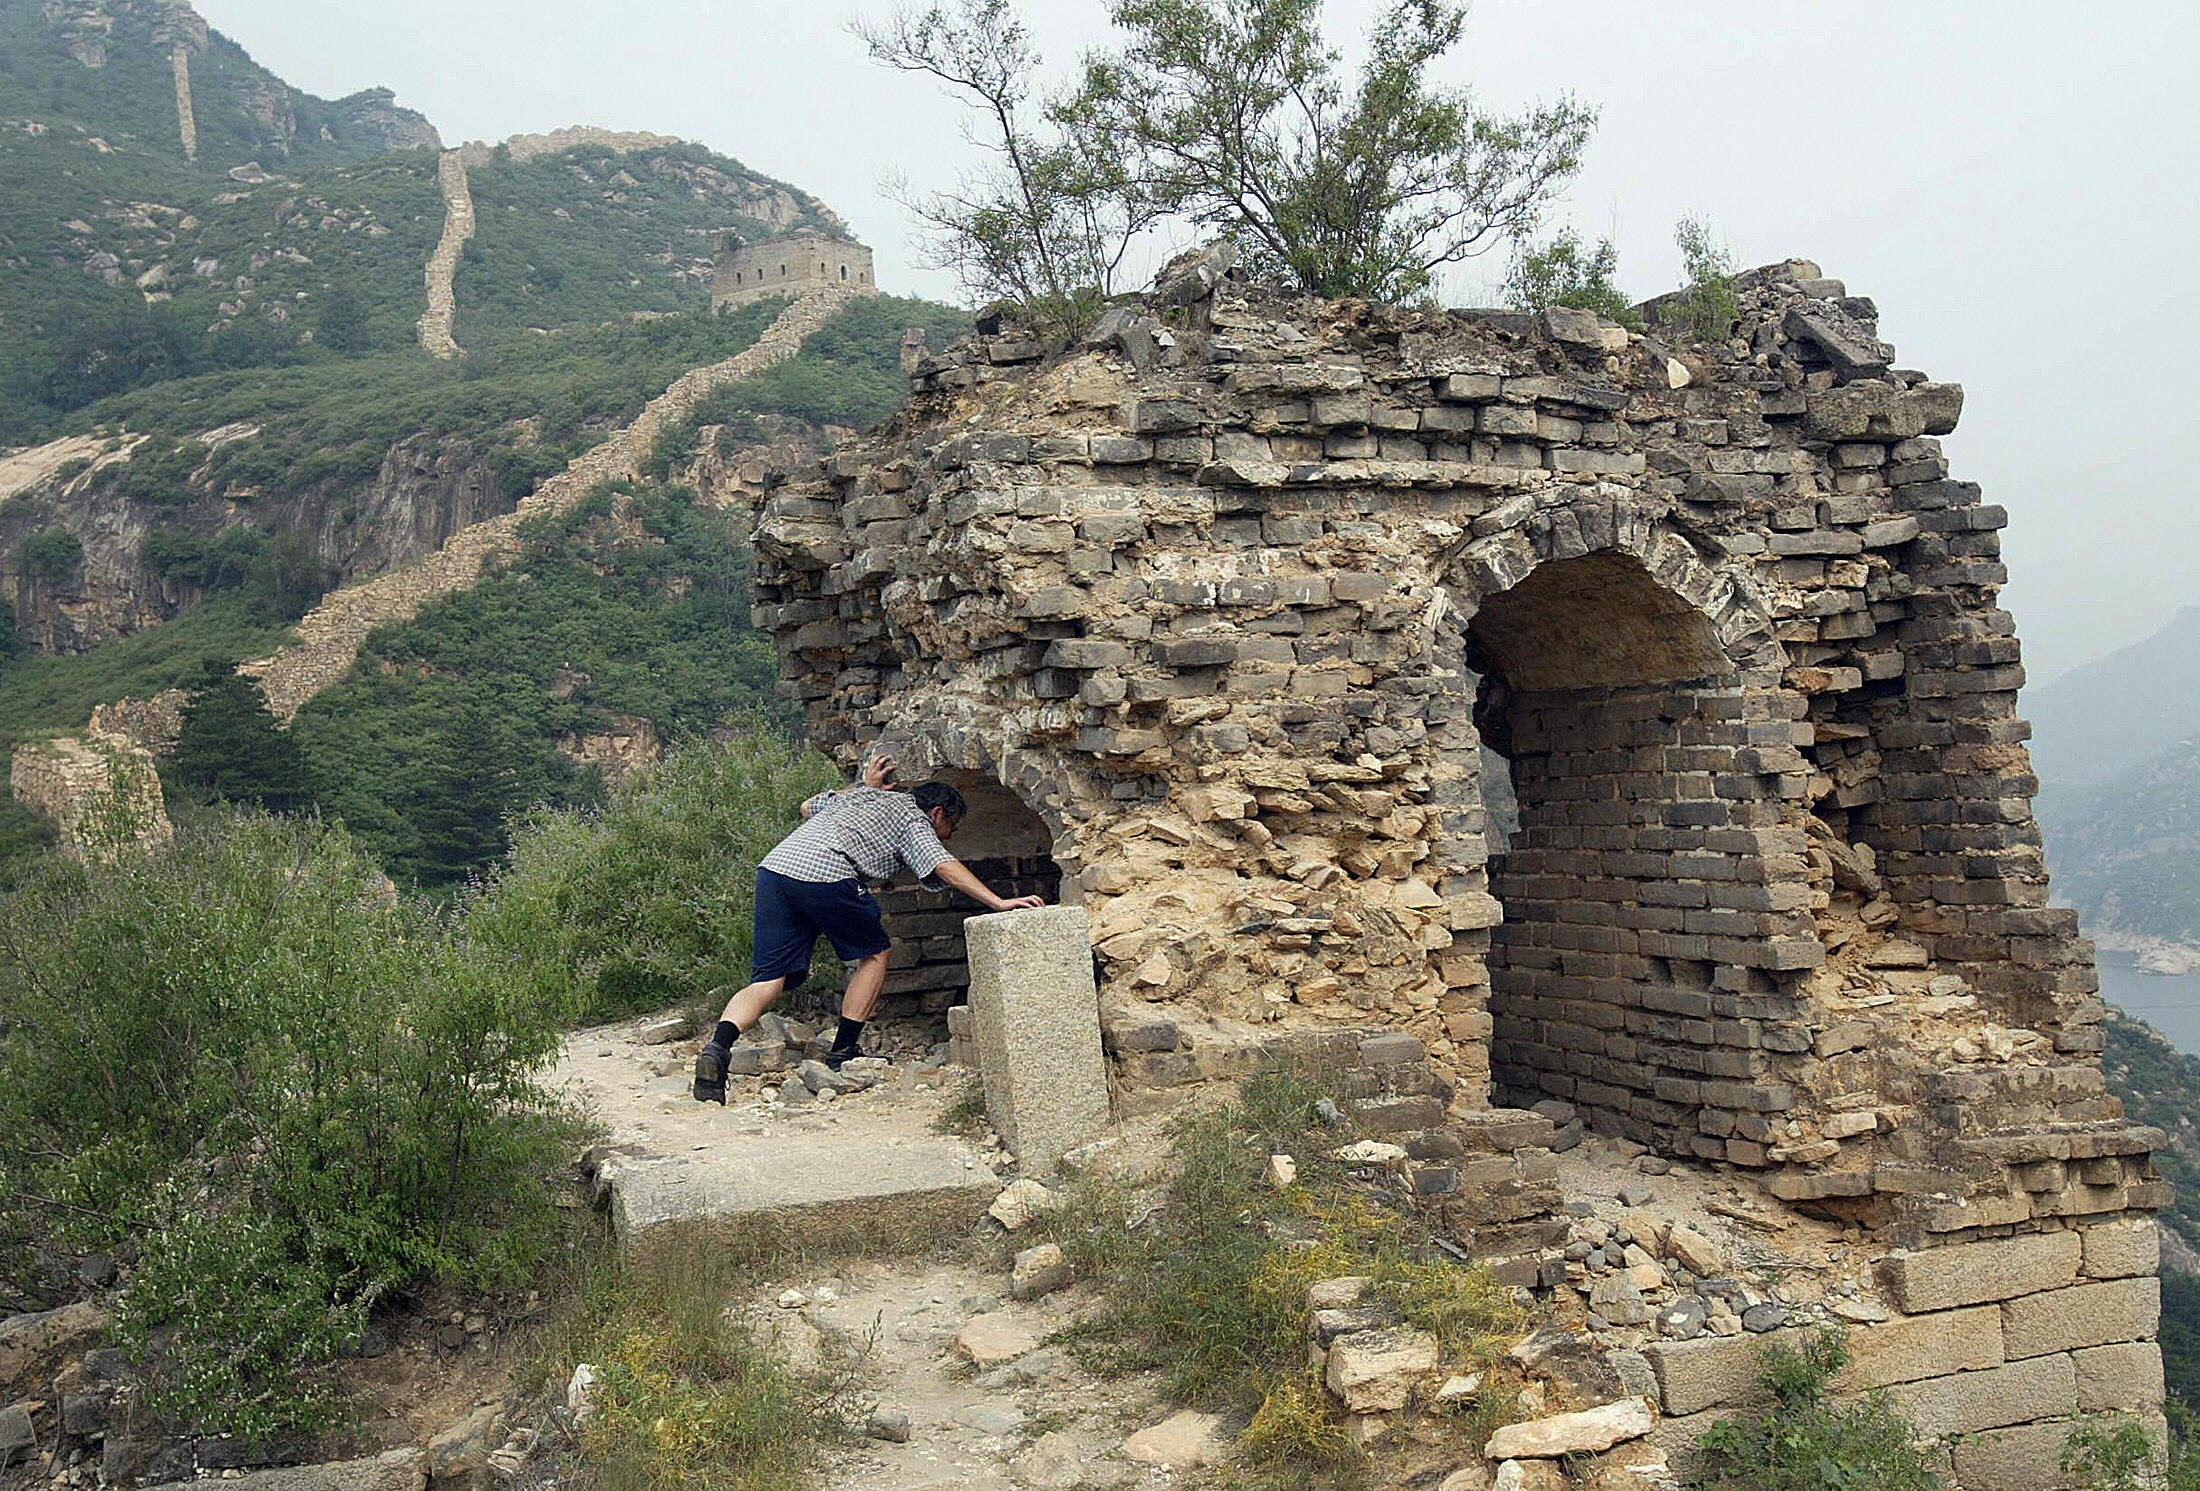 A man enters a crumbling structure along the the Great Wall at Qinglongxia, north of Beijing, on July 16, 2003